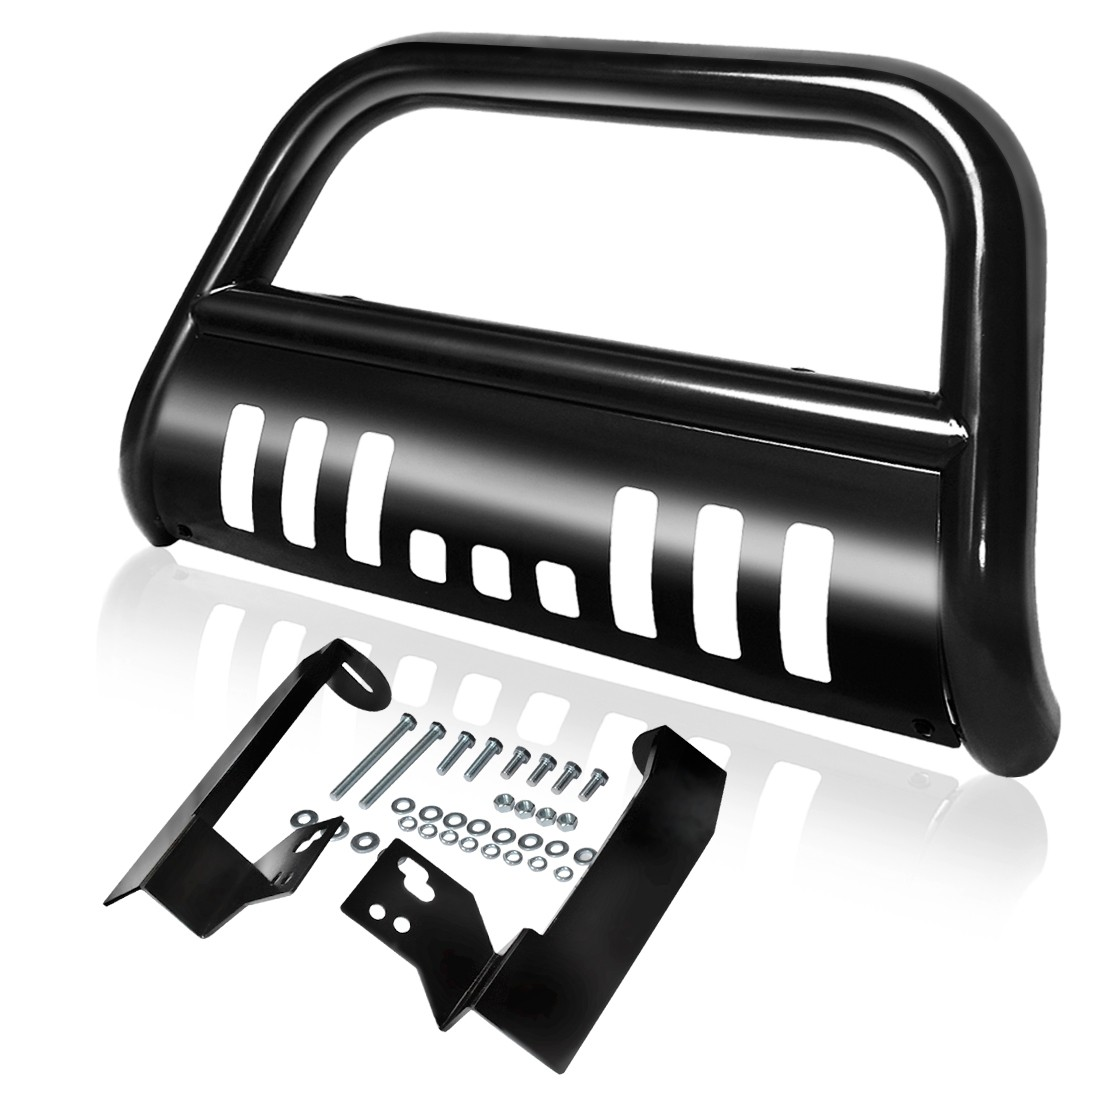 "AUTOSAVER88 3"" Bull Bar for 1994-2001 Dodge Ram 1500, Front Bumper Grille Brush Push Guard Steel Include Skid Plate Light Mount - Black"